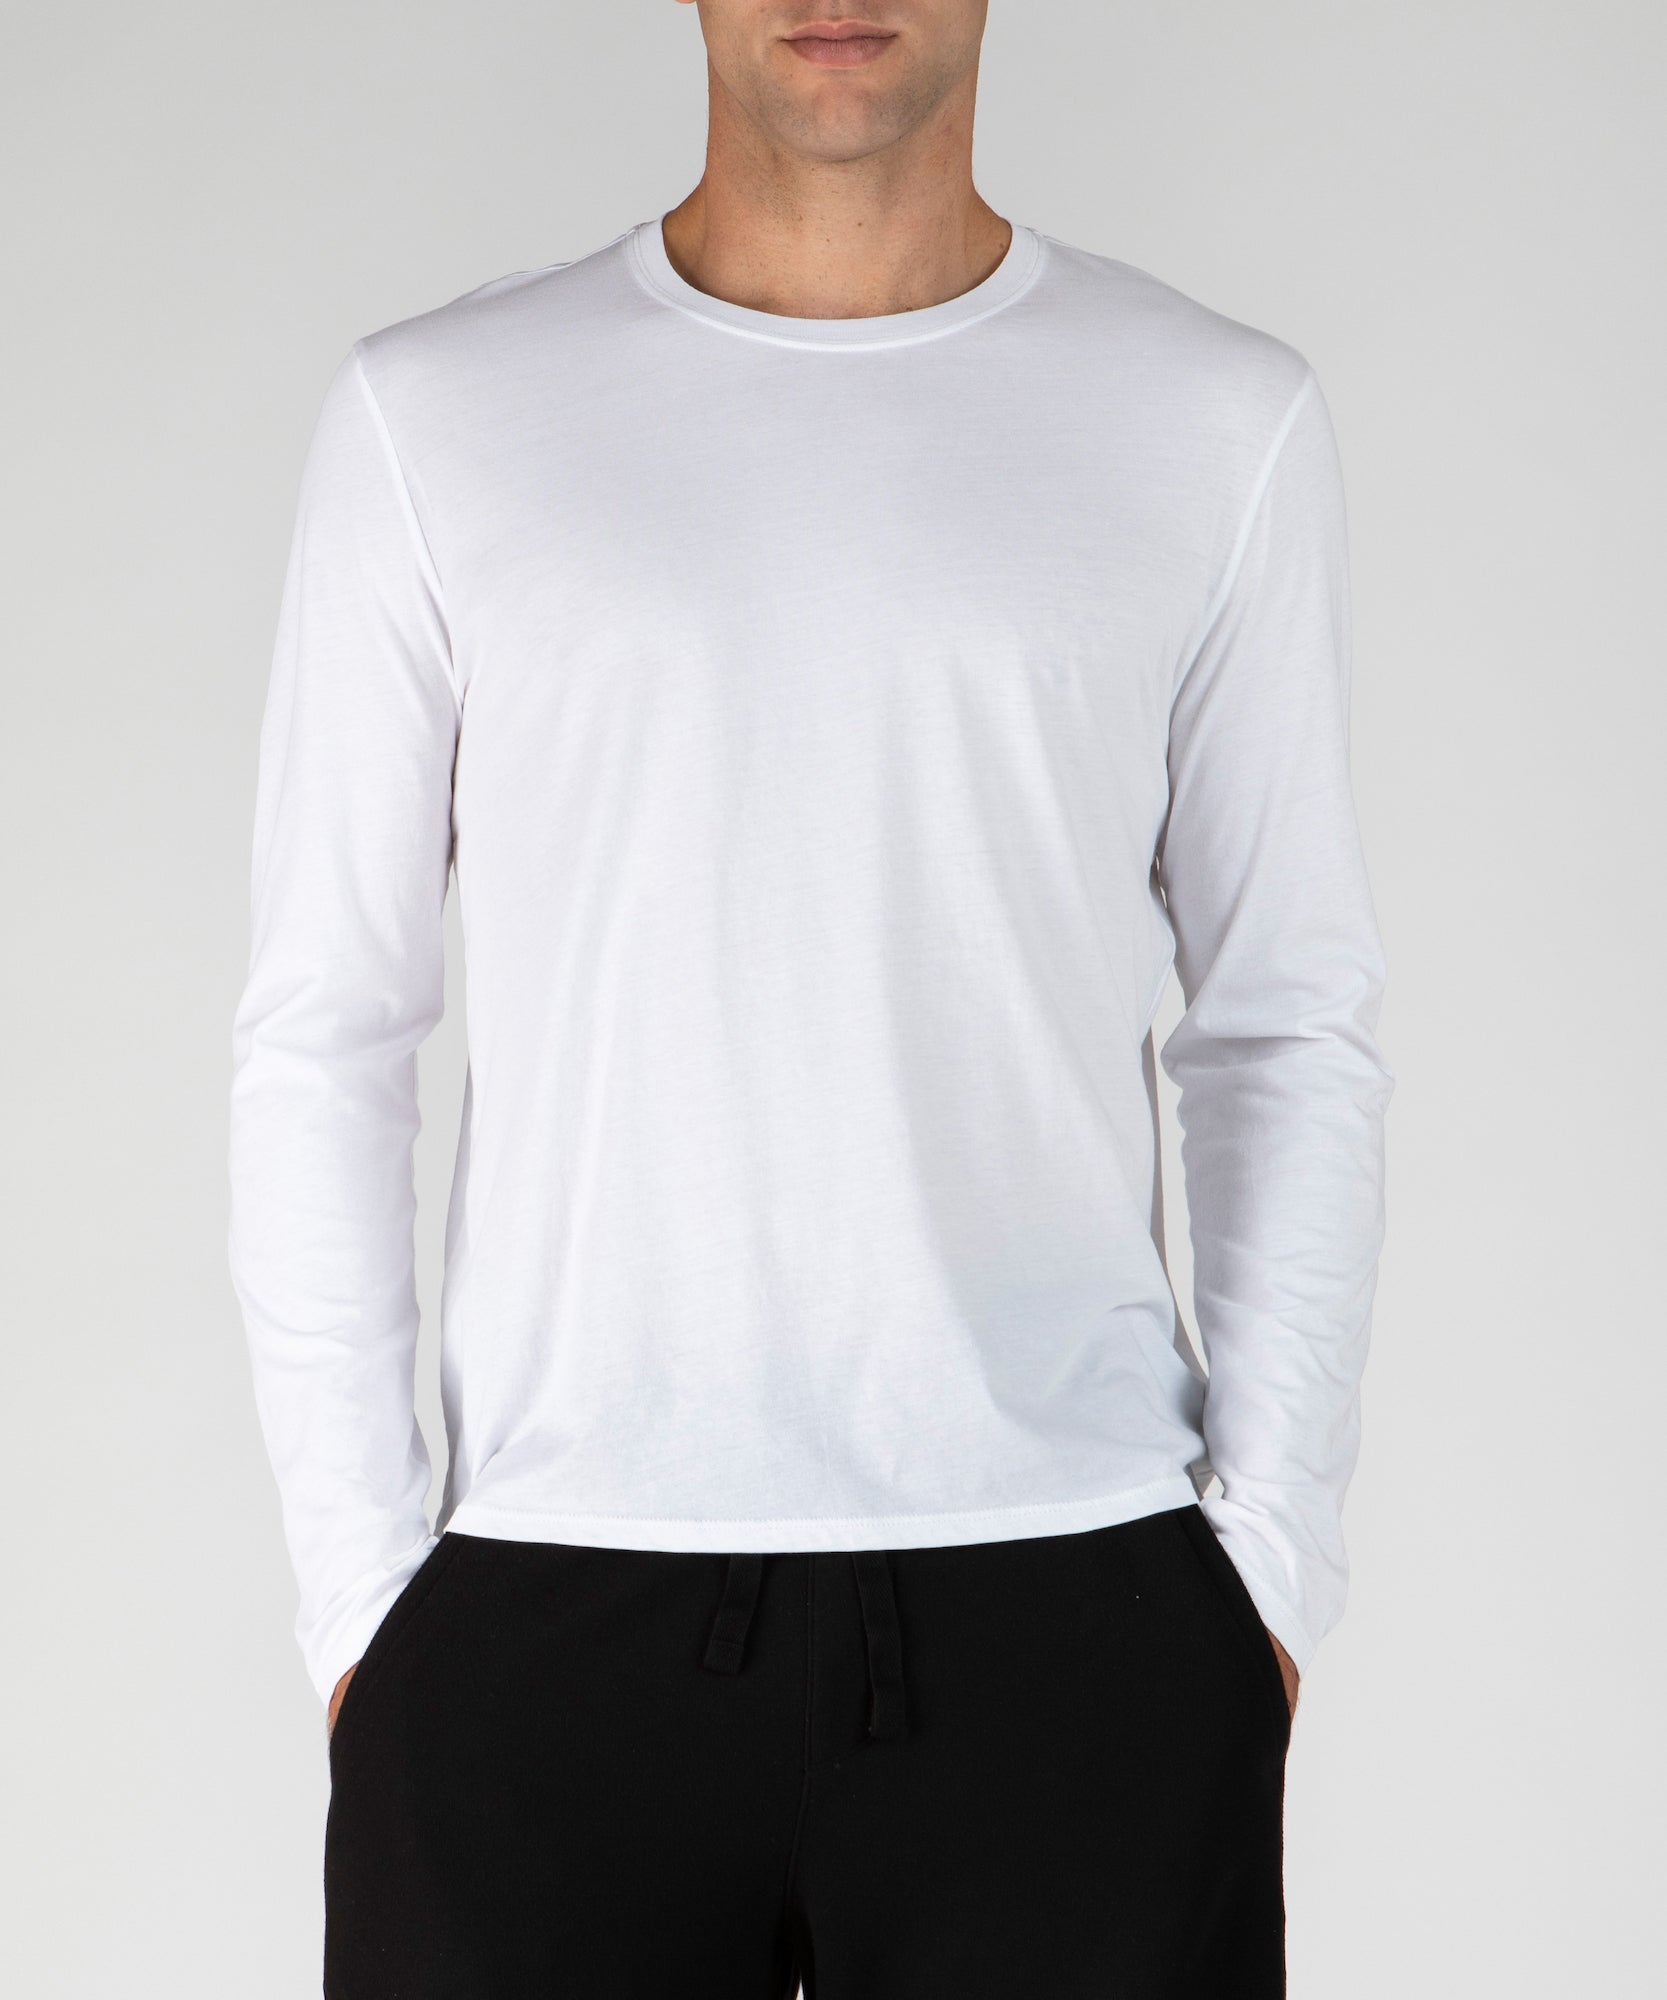 White Classic Jersey Long Sleeve Crew Neck Tee - Men's Cotton Long Sleeve Tee by ATM Anthony Thomas Melillo